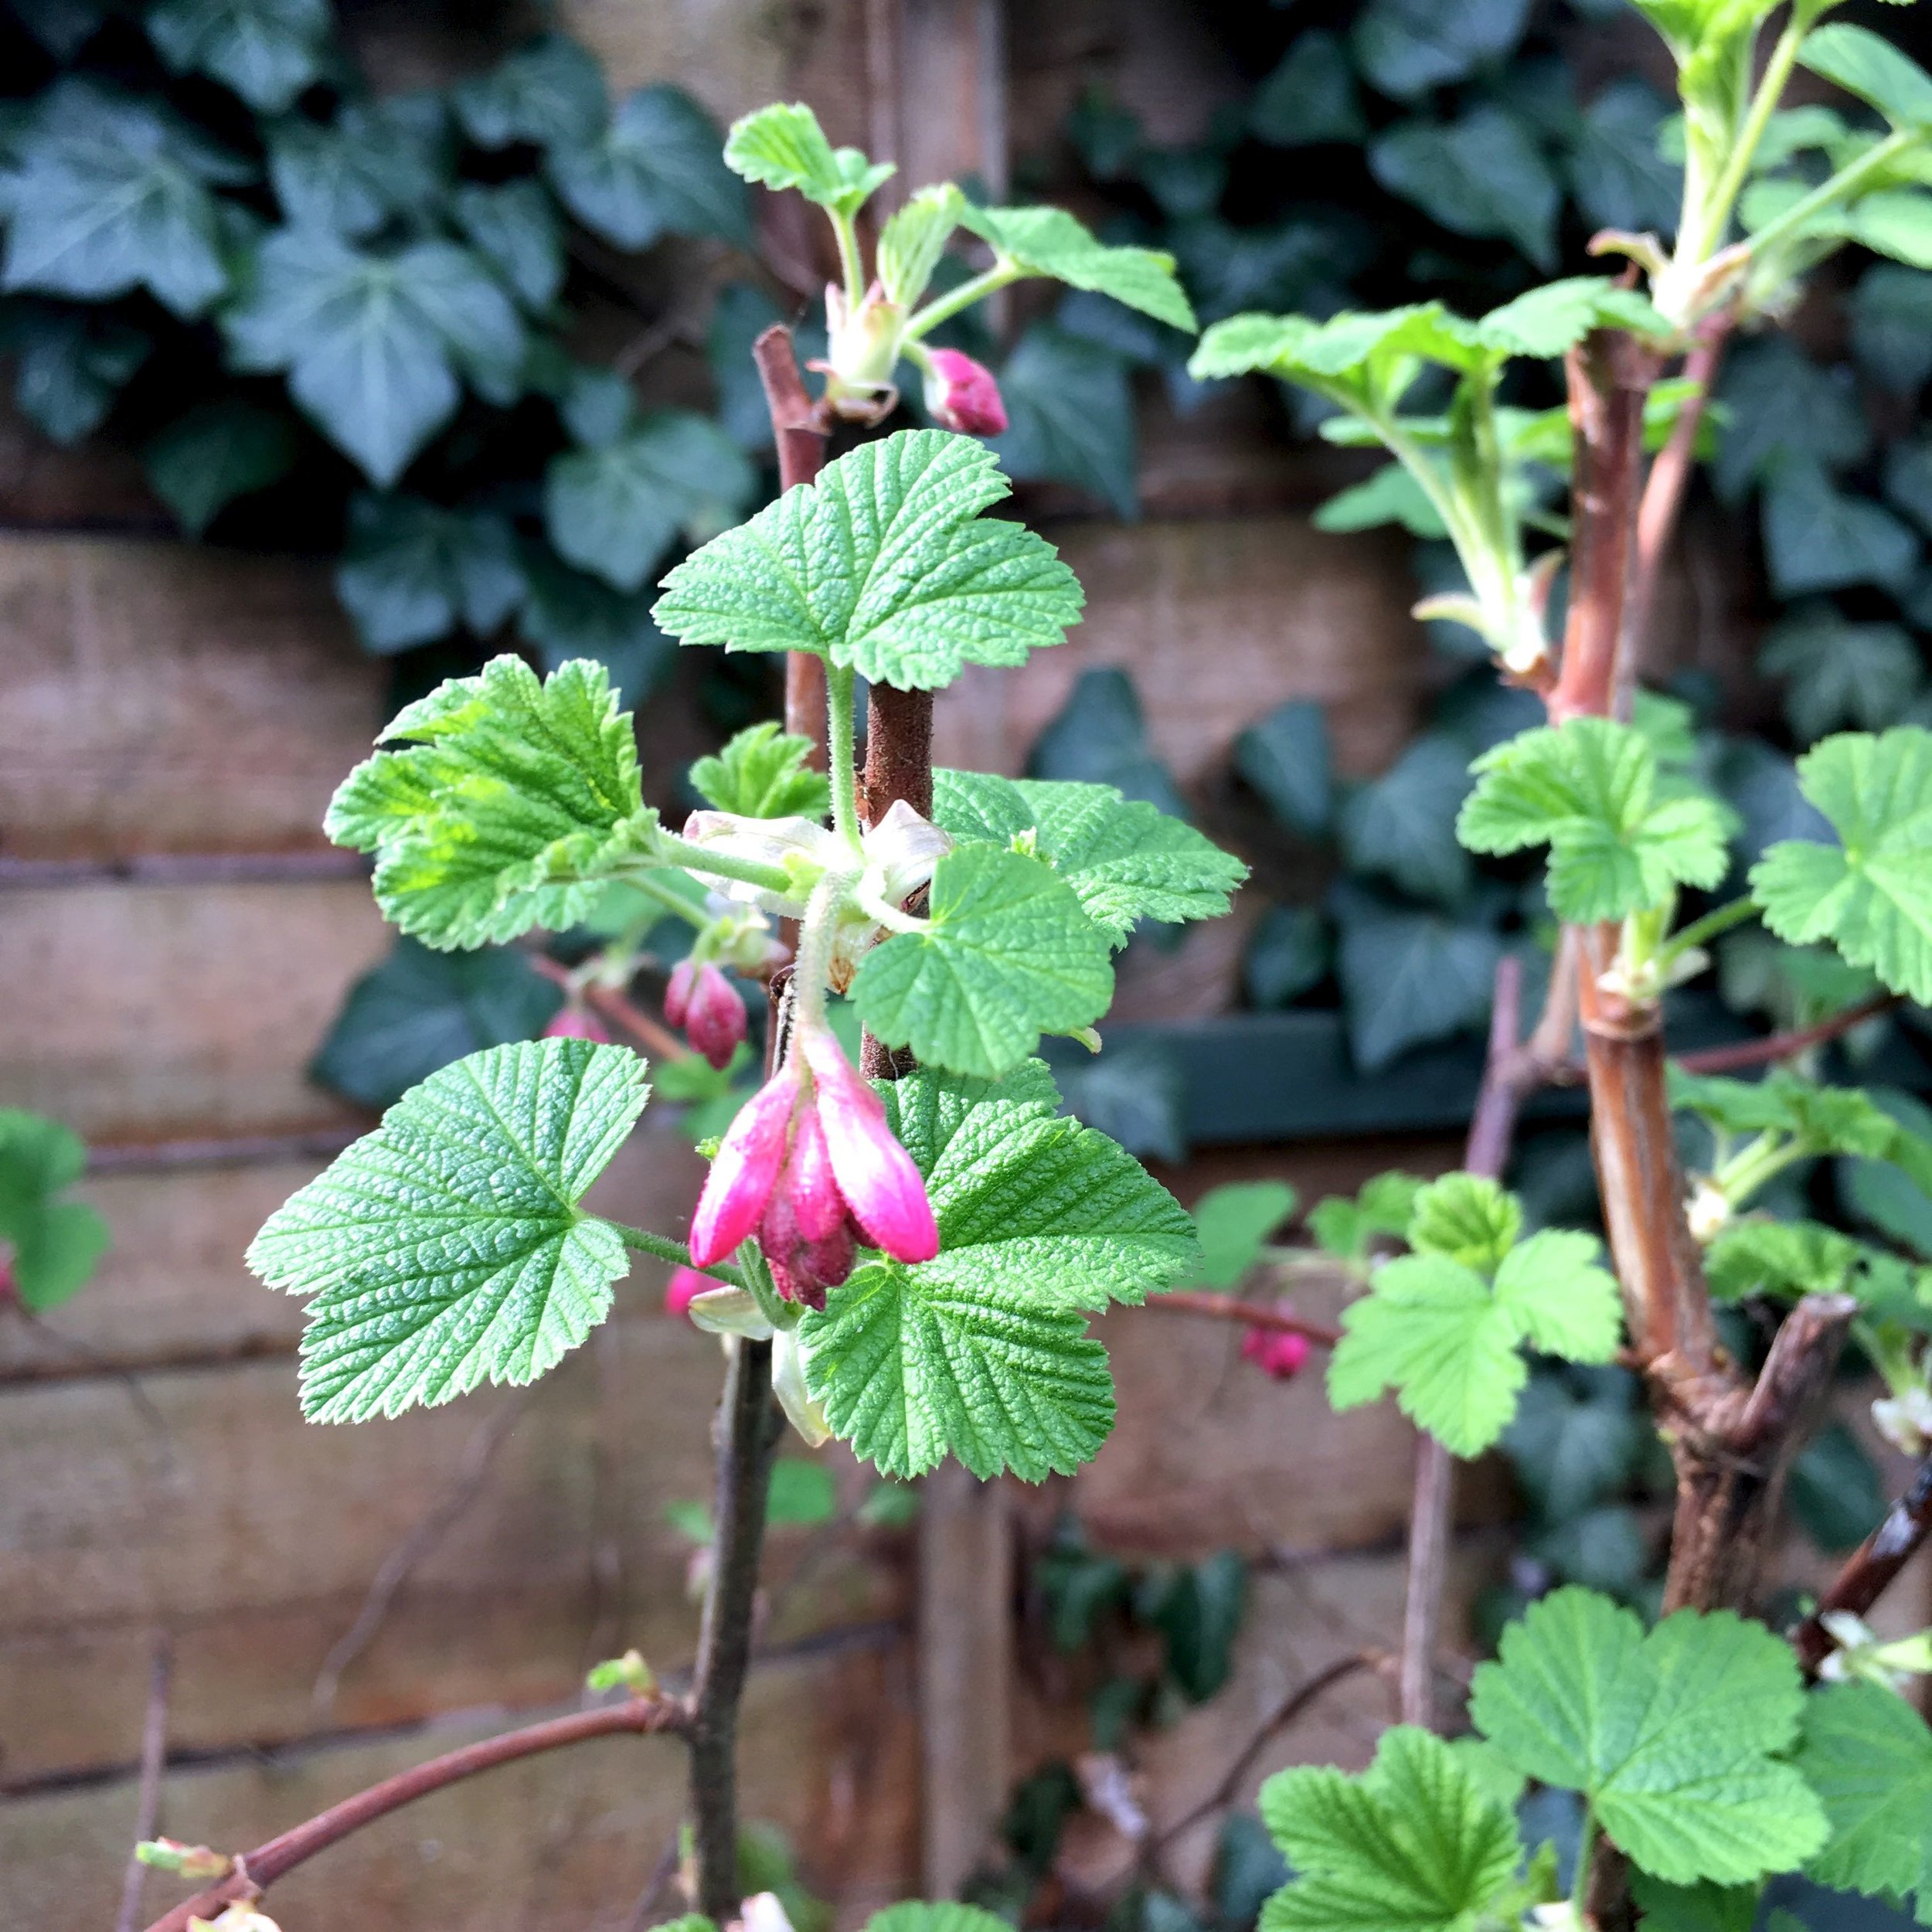 Another blast of pink - the currant berry - waiting to open its buds